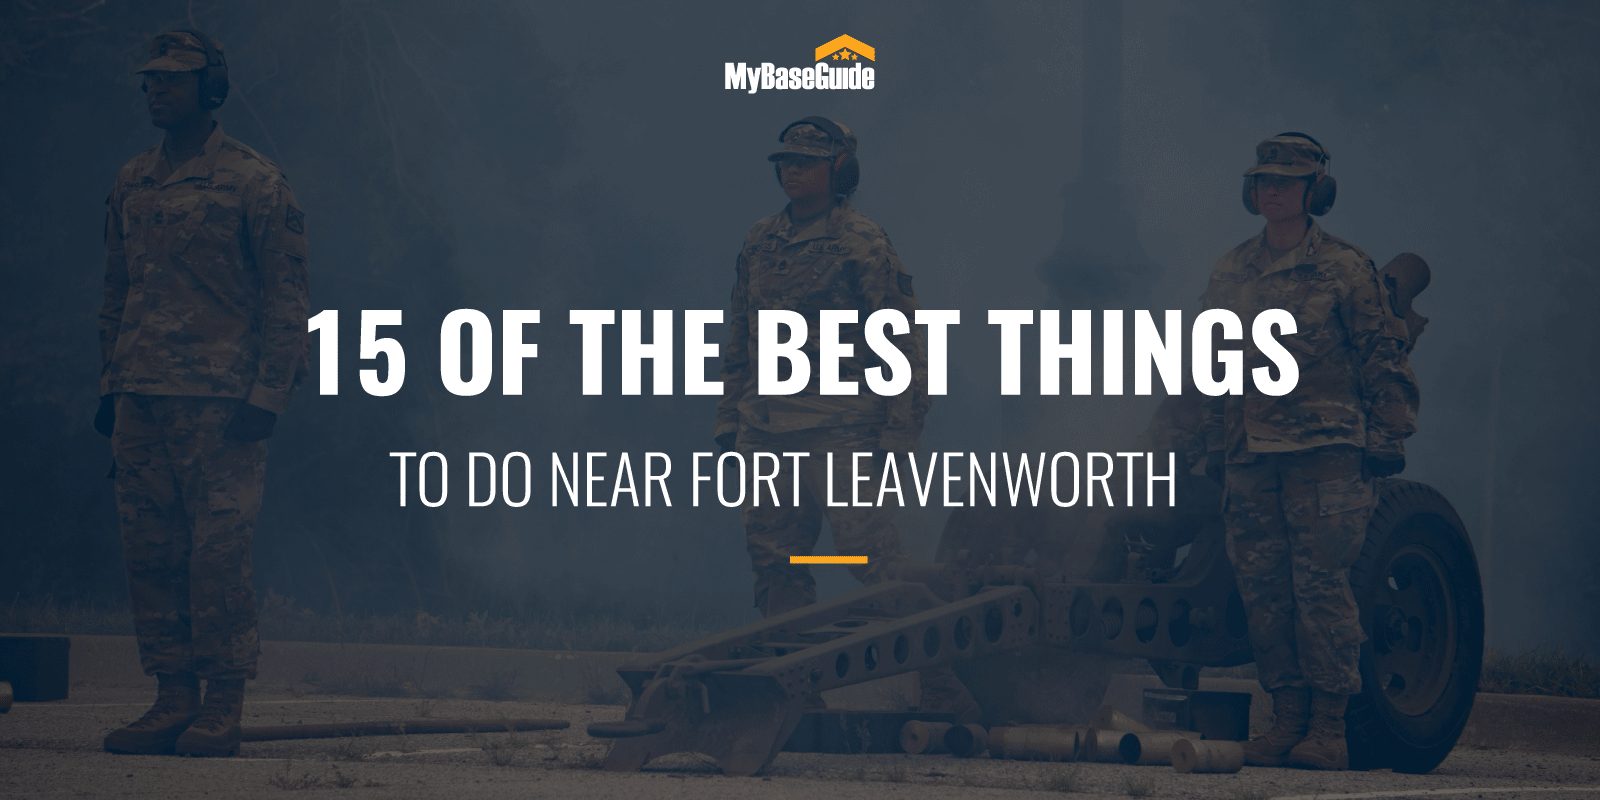 15 Of the Best Things to Do Near Fort Leavenworth